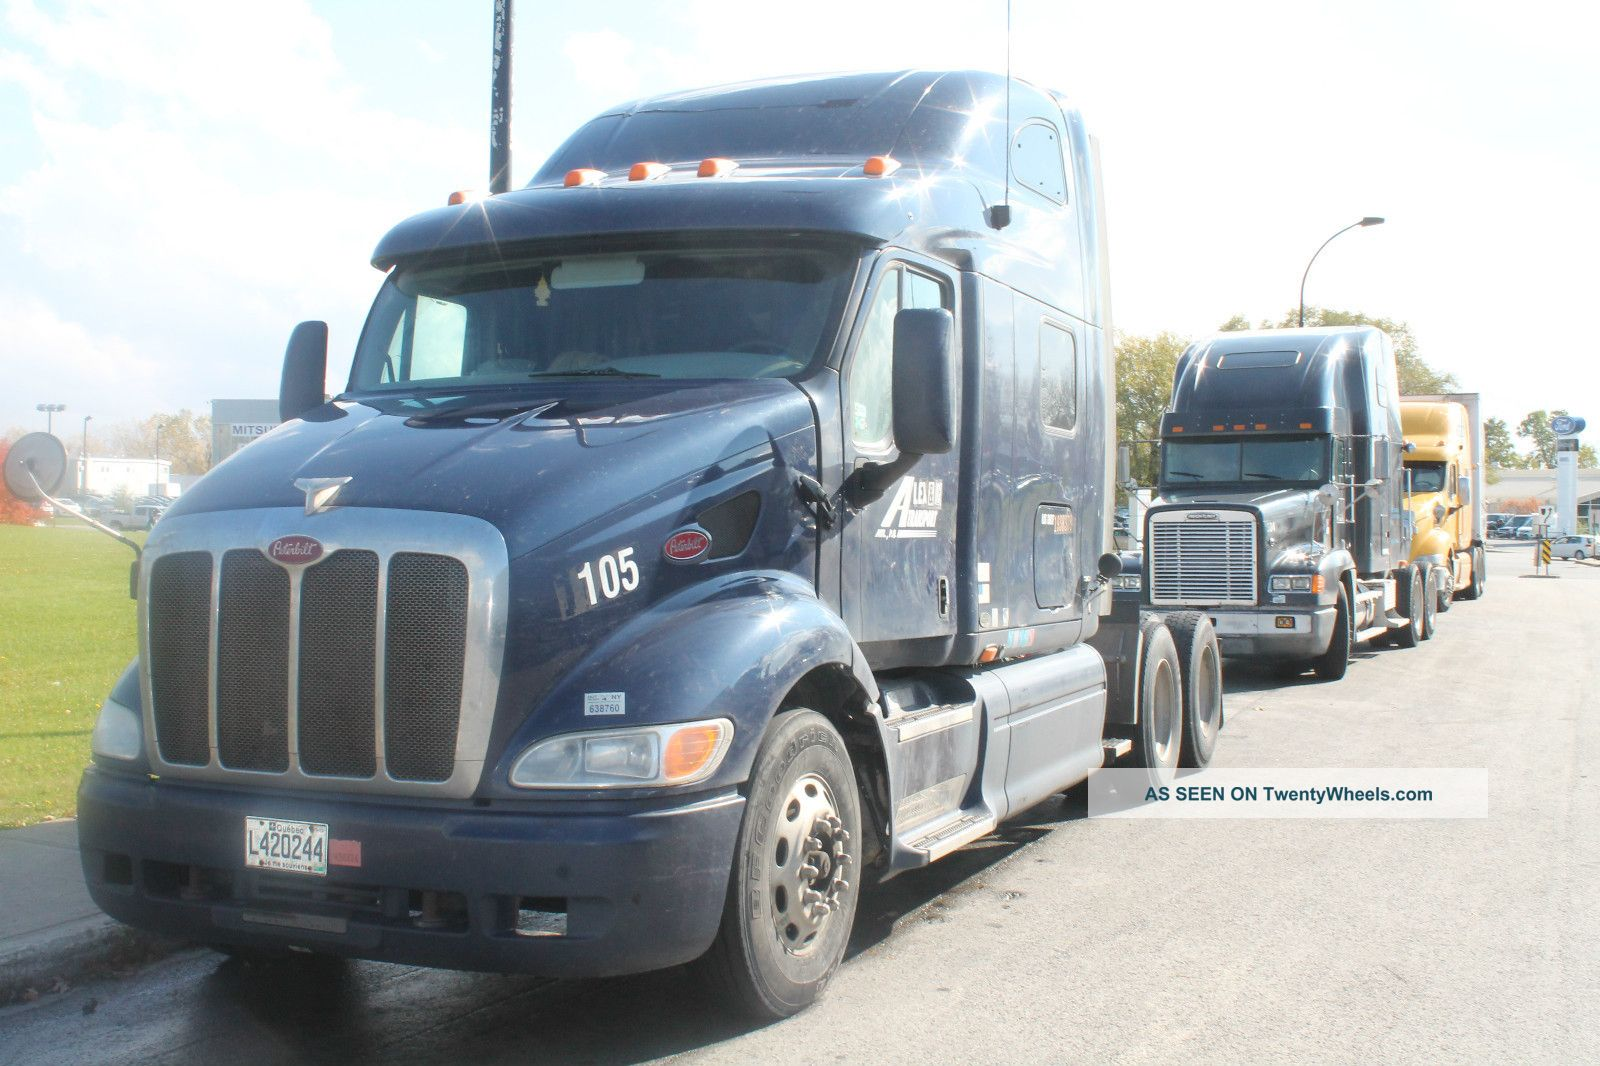 2004 Peterbilt Truck 387 Engine Type : 13 C,  10 Spd Transmission,  Automatic, Sleeper Semi Trucks photo